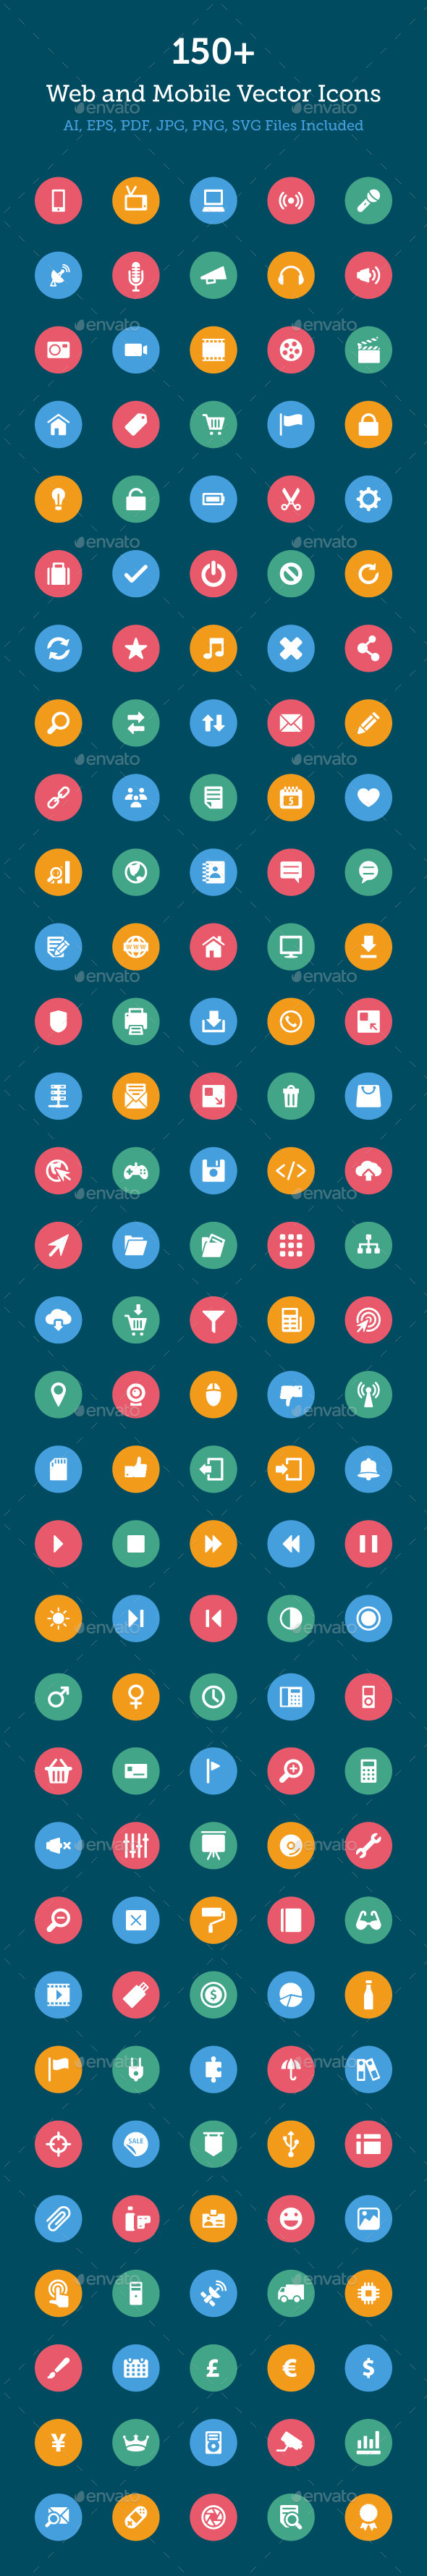 150+ Web and Mobile Vector Icons - Web Icons